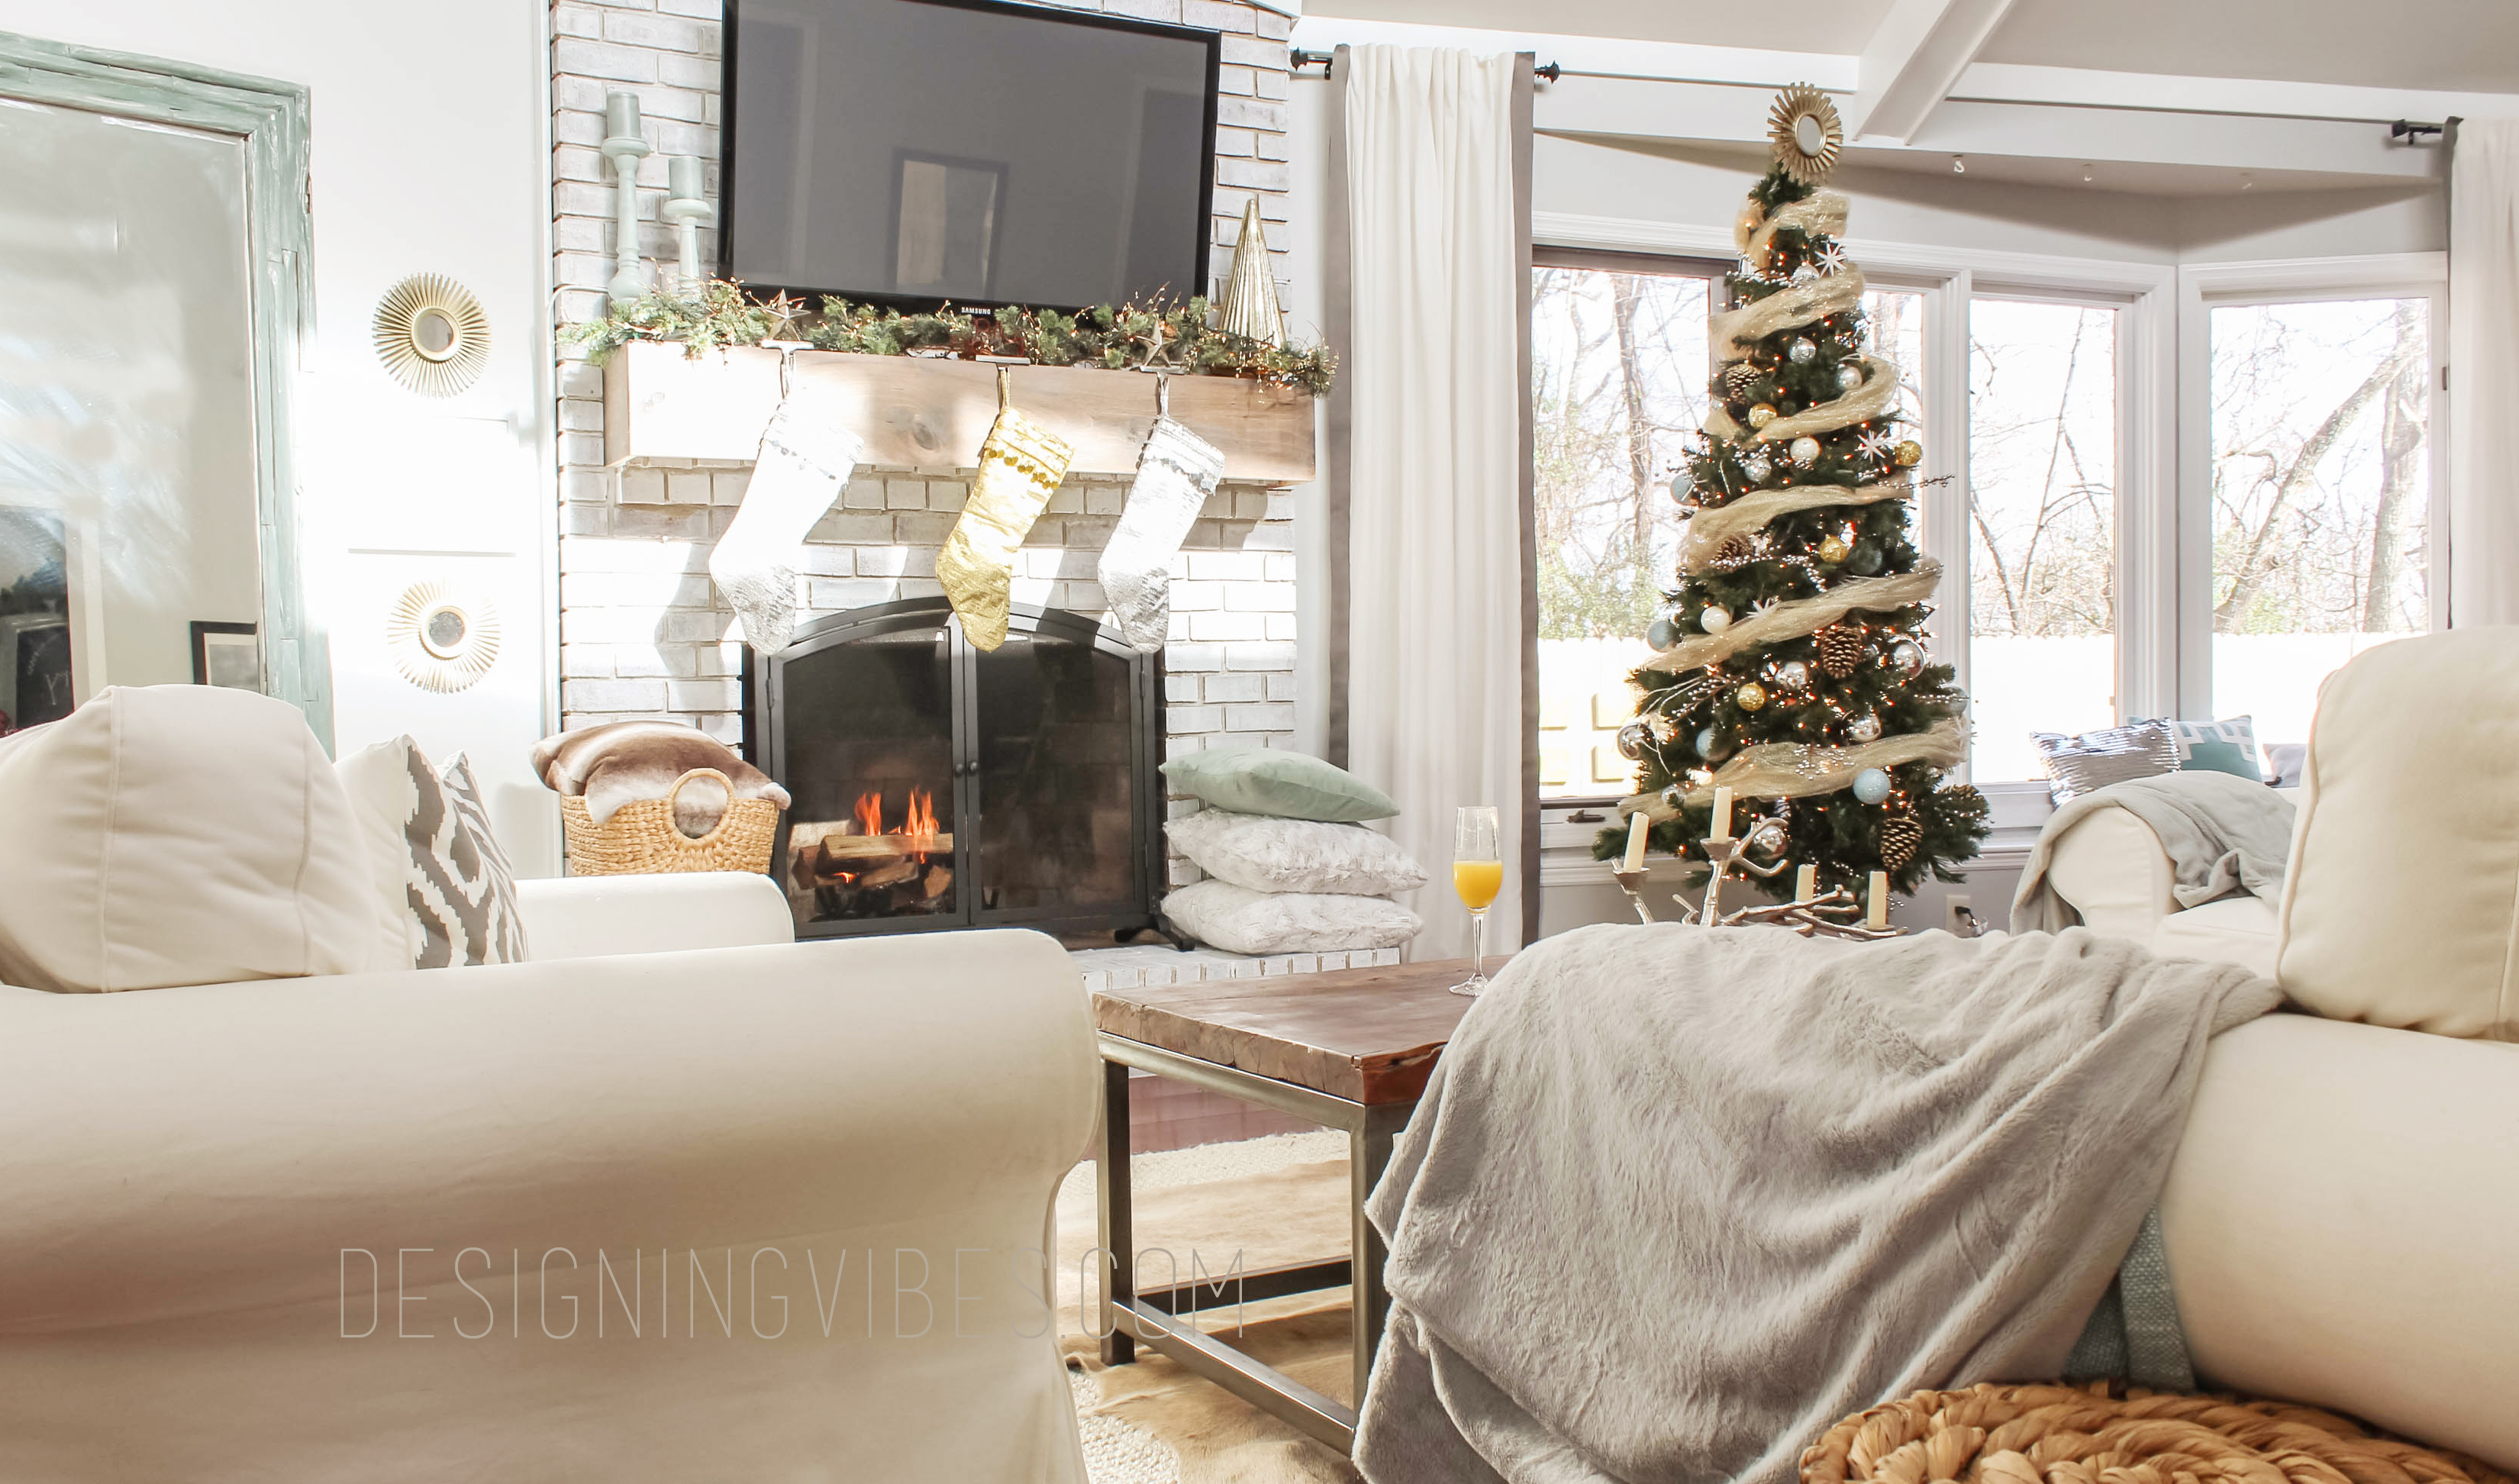 How to decorate my room for christmas - Neutral Christmas Decor